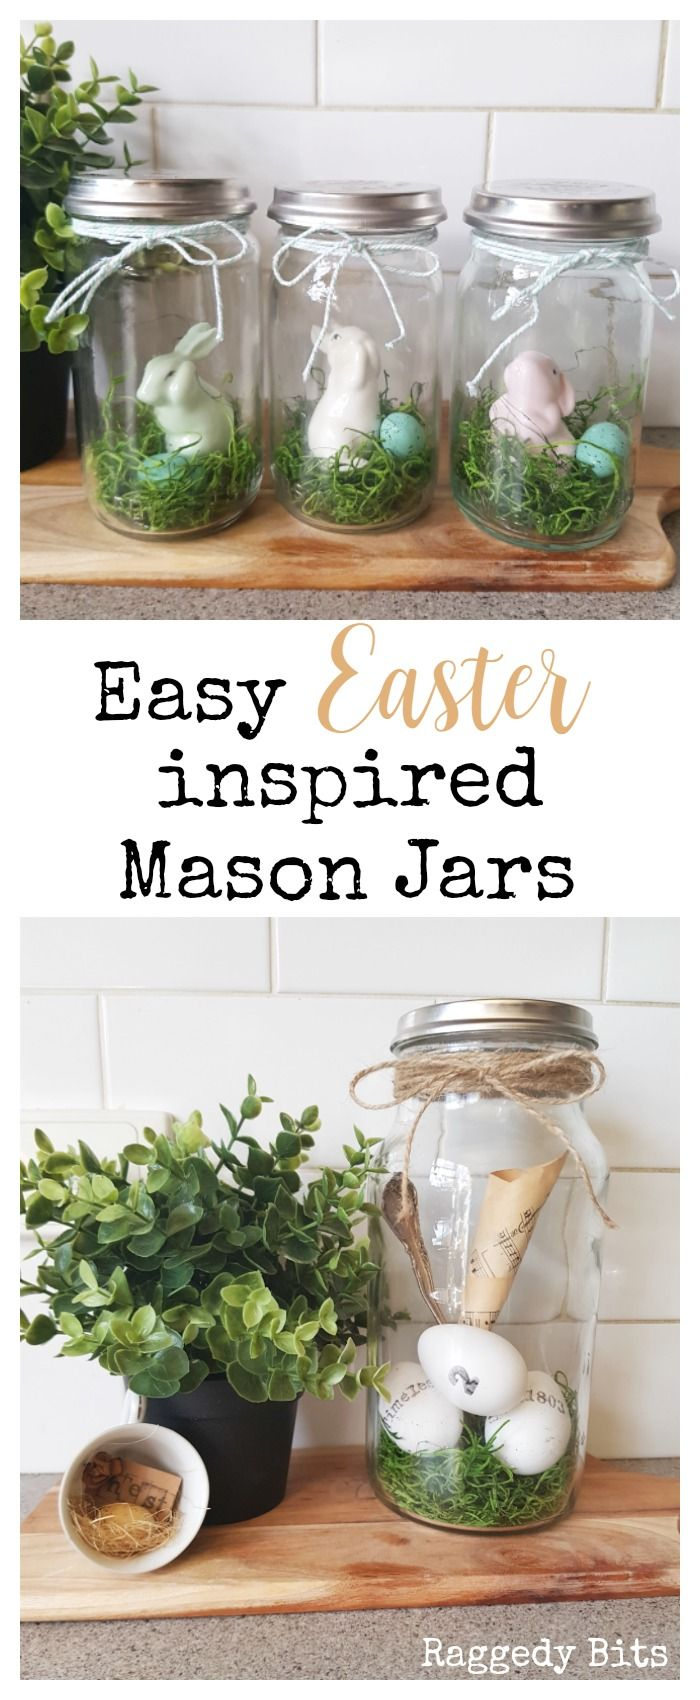 Make some super simple easy Easter Inspired Mason Jars for Easter as gifts or to decorate with around your home | Full tutorial | www.raggedy-bits.com